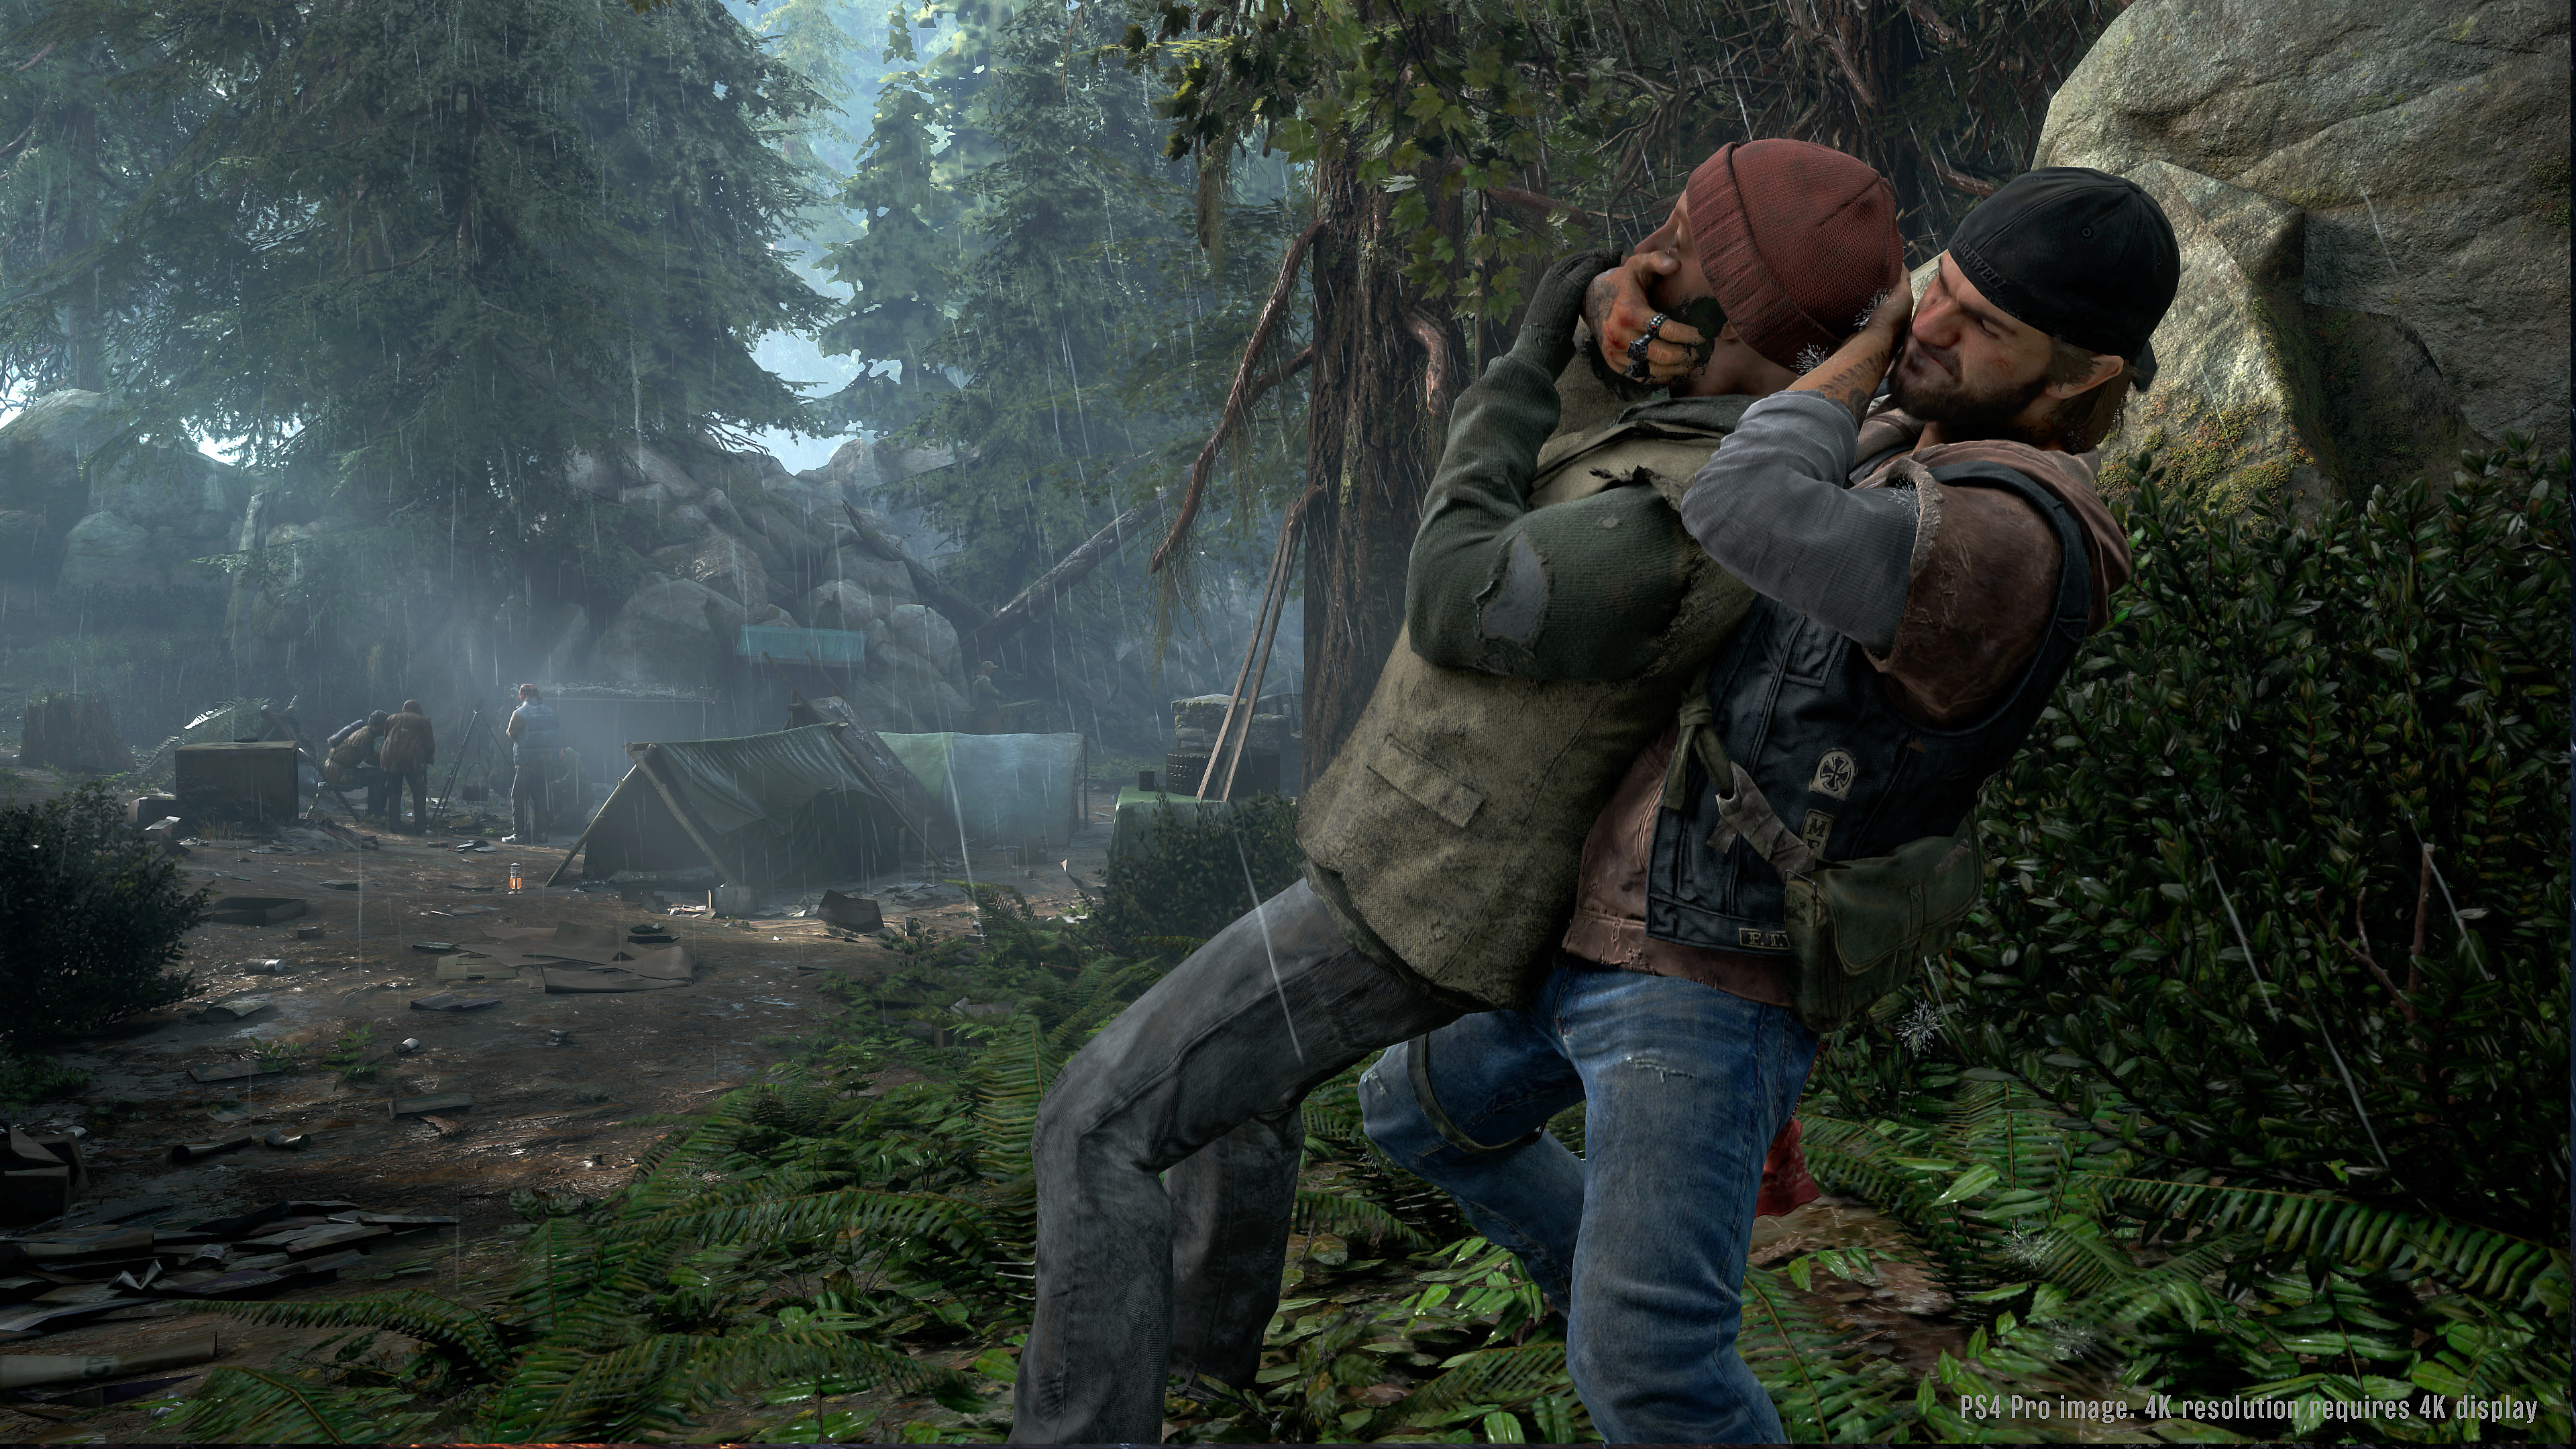 Days Gone Game Open World Action Ps4 Playstation The Crew Requires Internet Reg 1 Screenshot